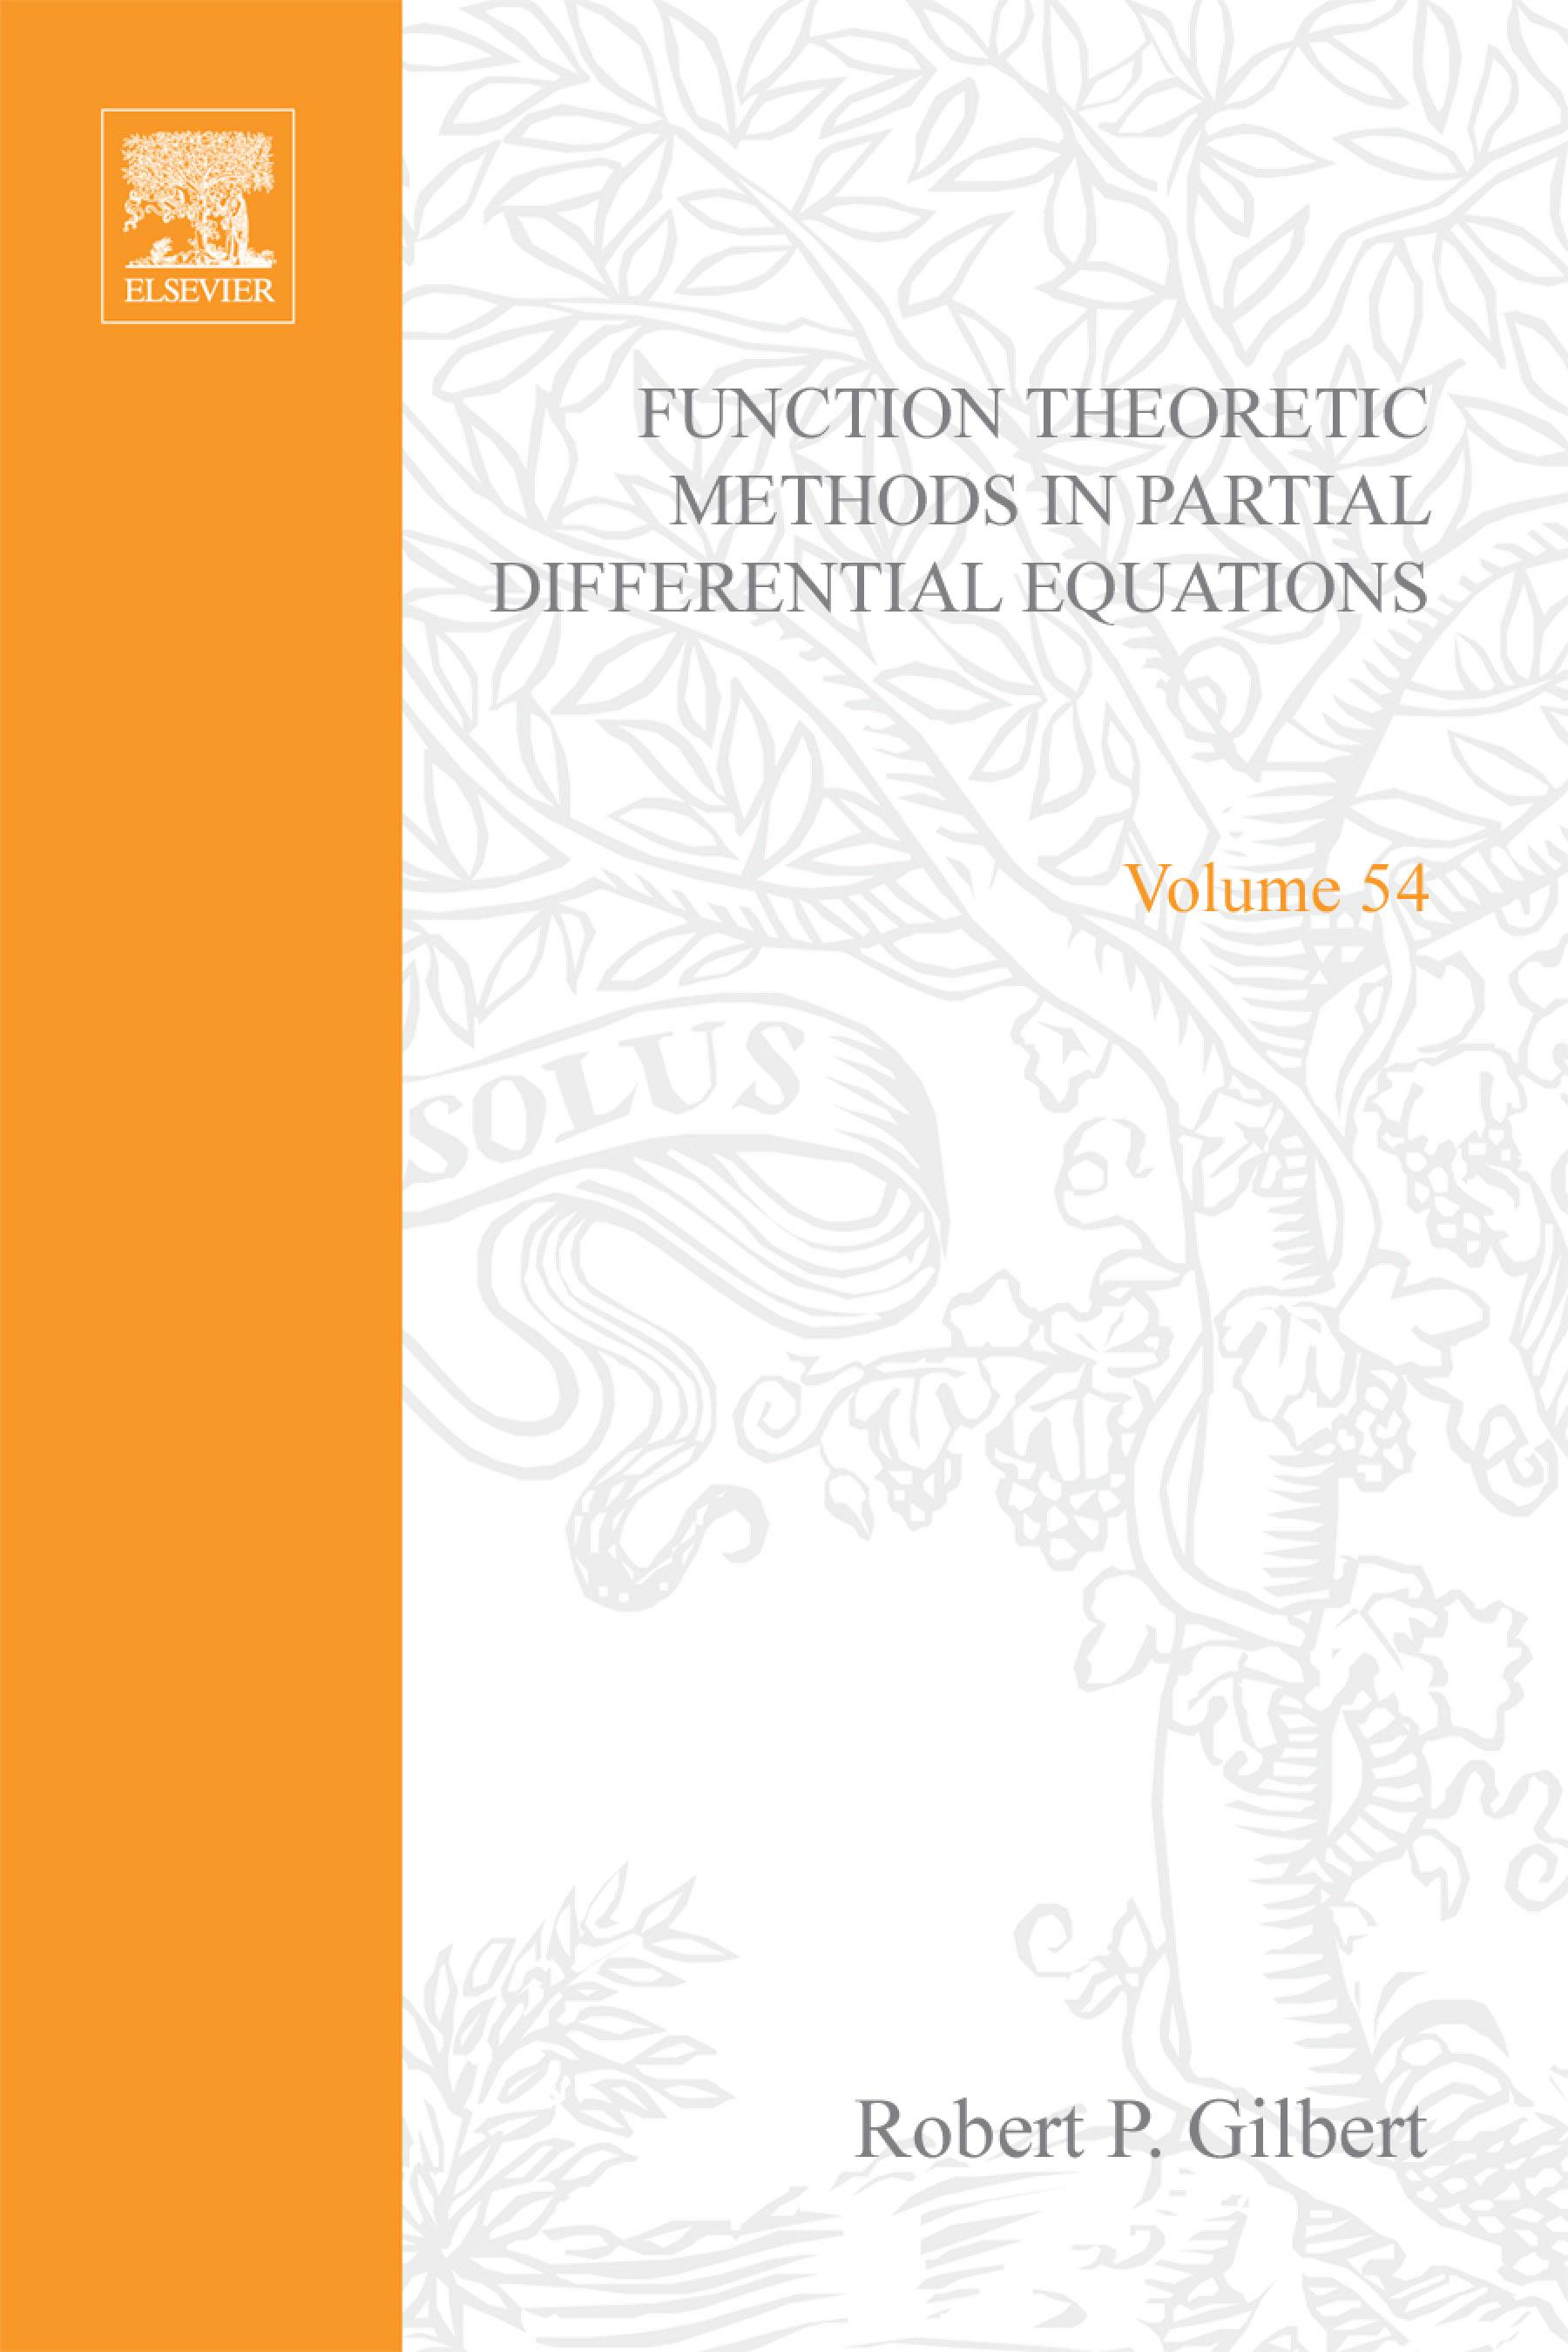 Elizabeth Gilbert - Function theoretic methods in partial differential equations